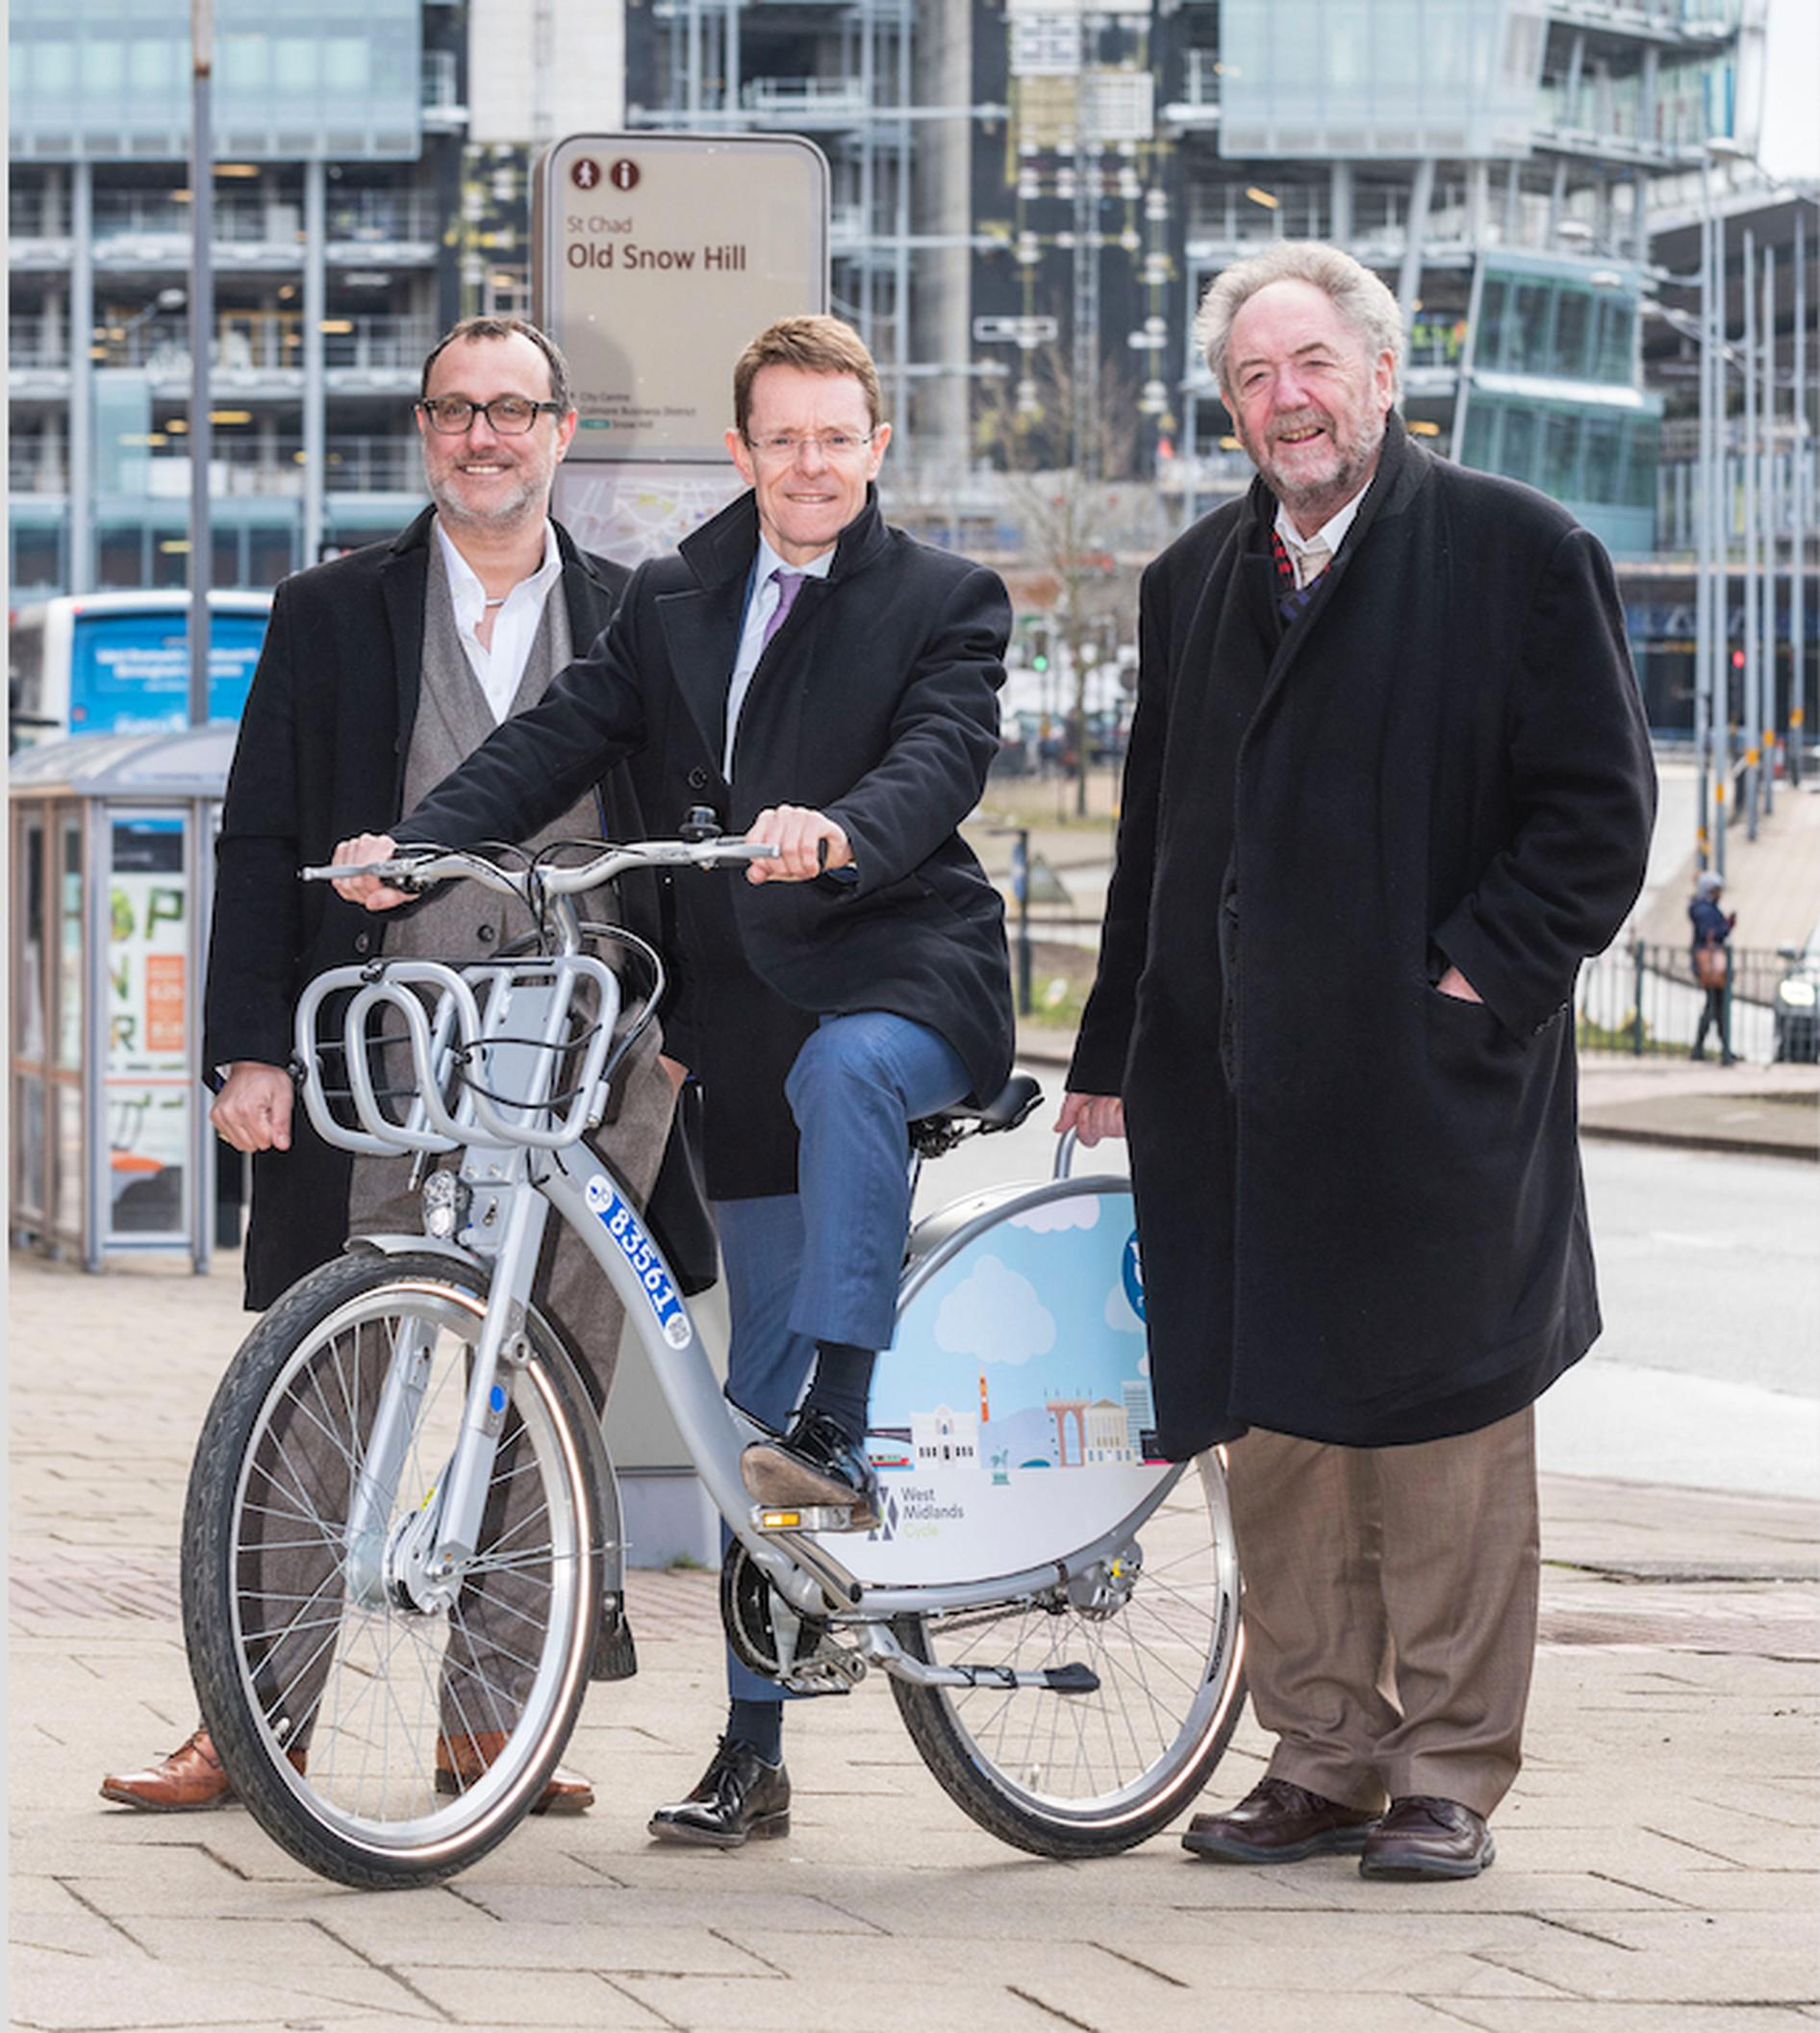 Docked bike-hire scheme to be rolled out across the West Midlands